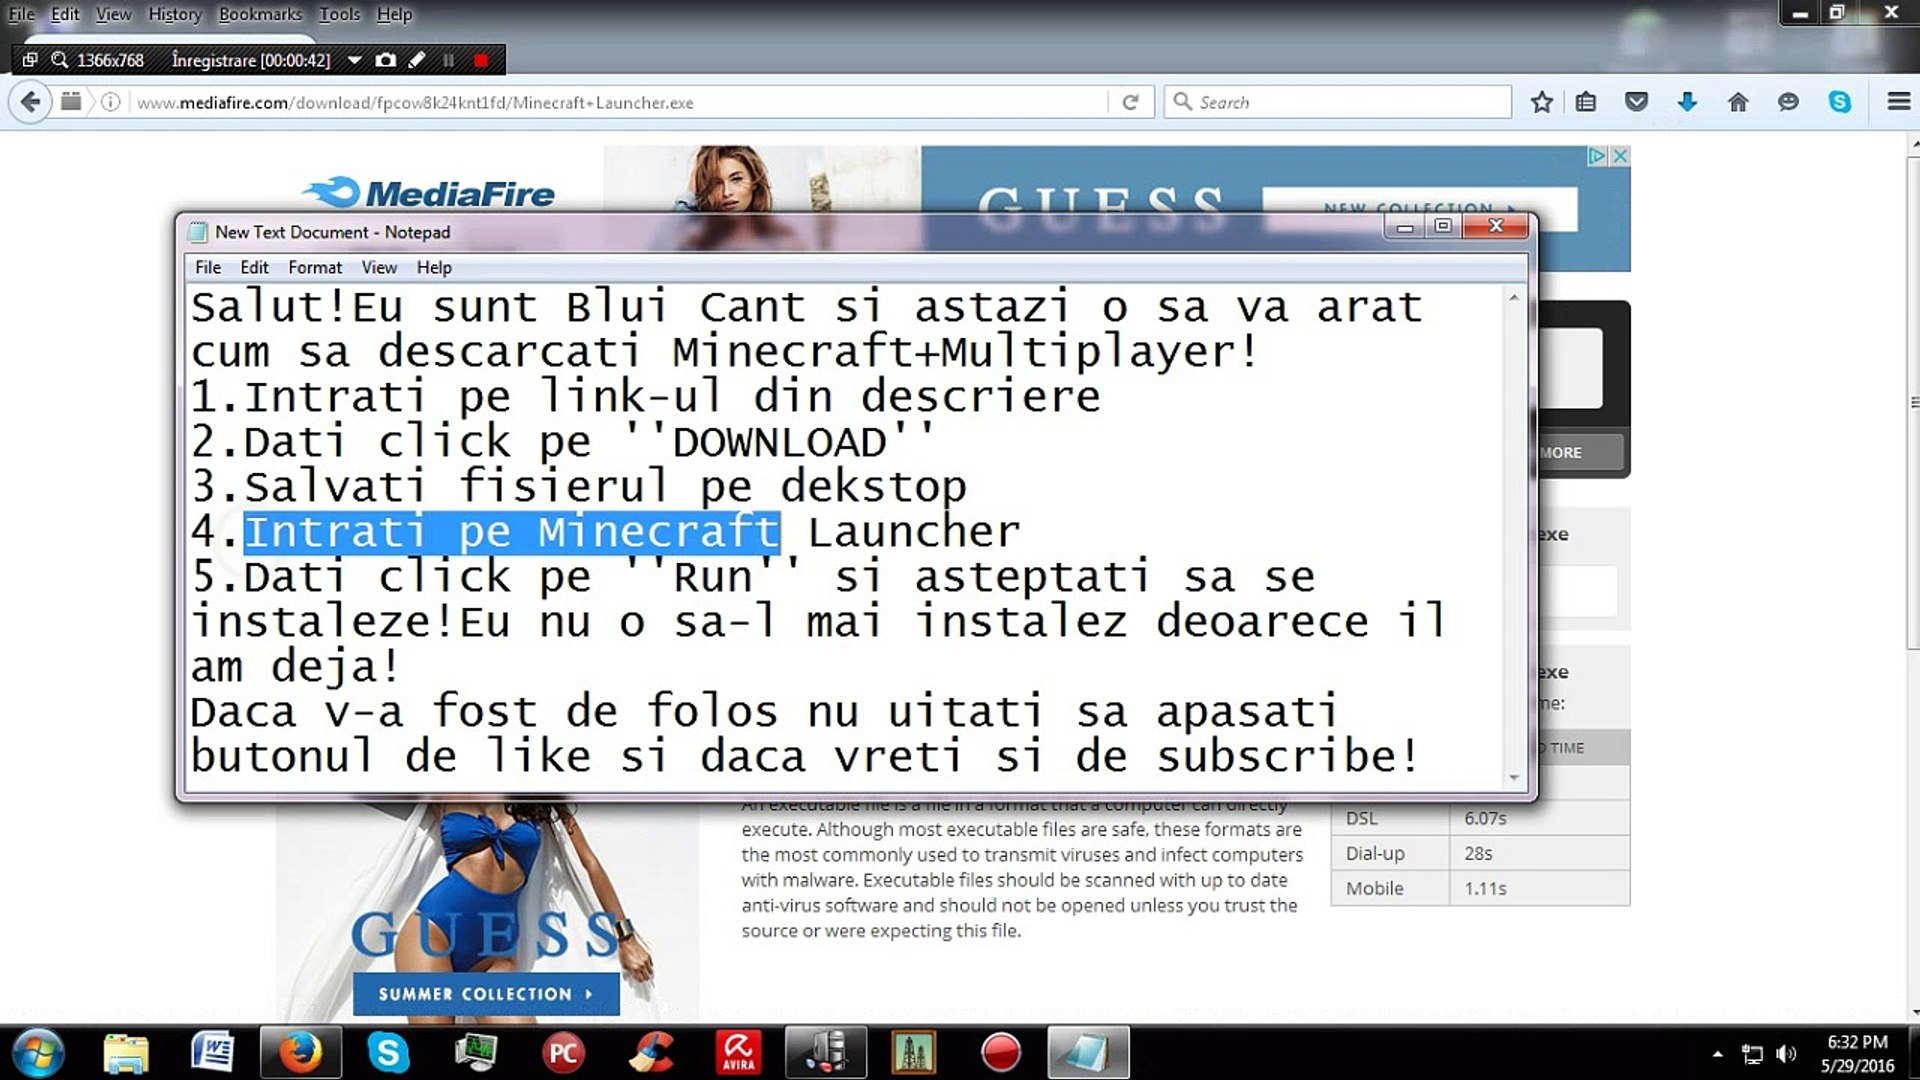 Tutorial|Cum sa descarci Minecraft+Multiplayer